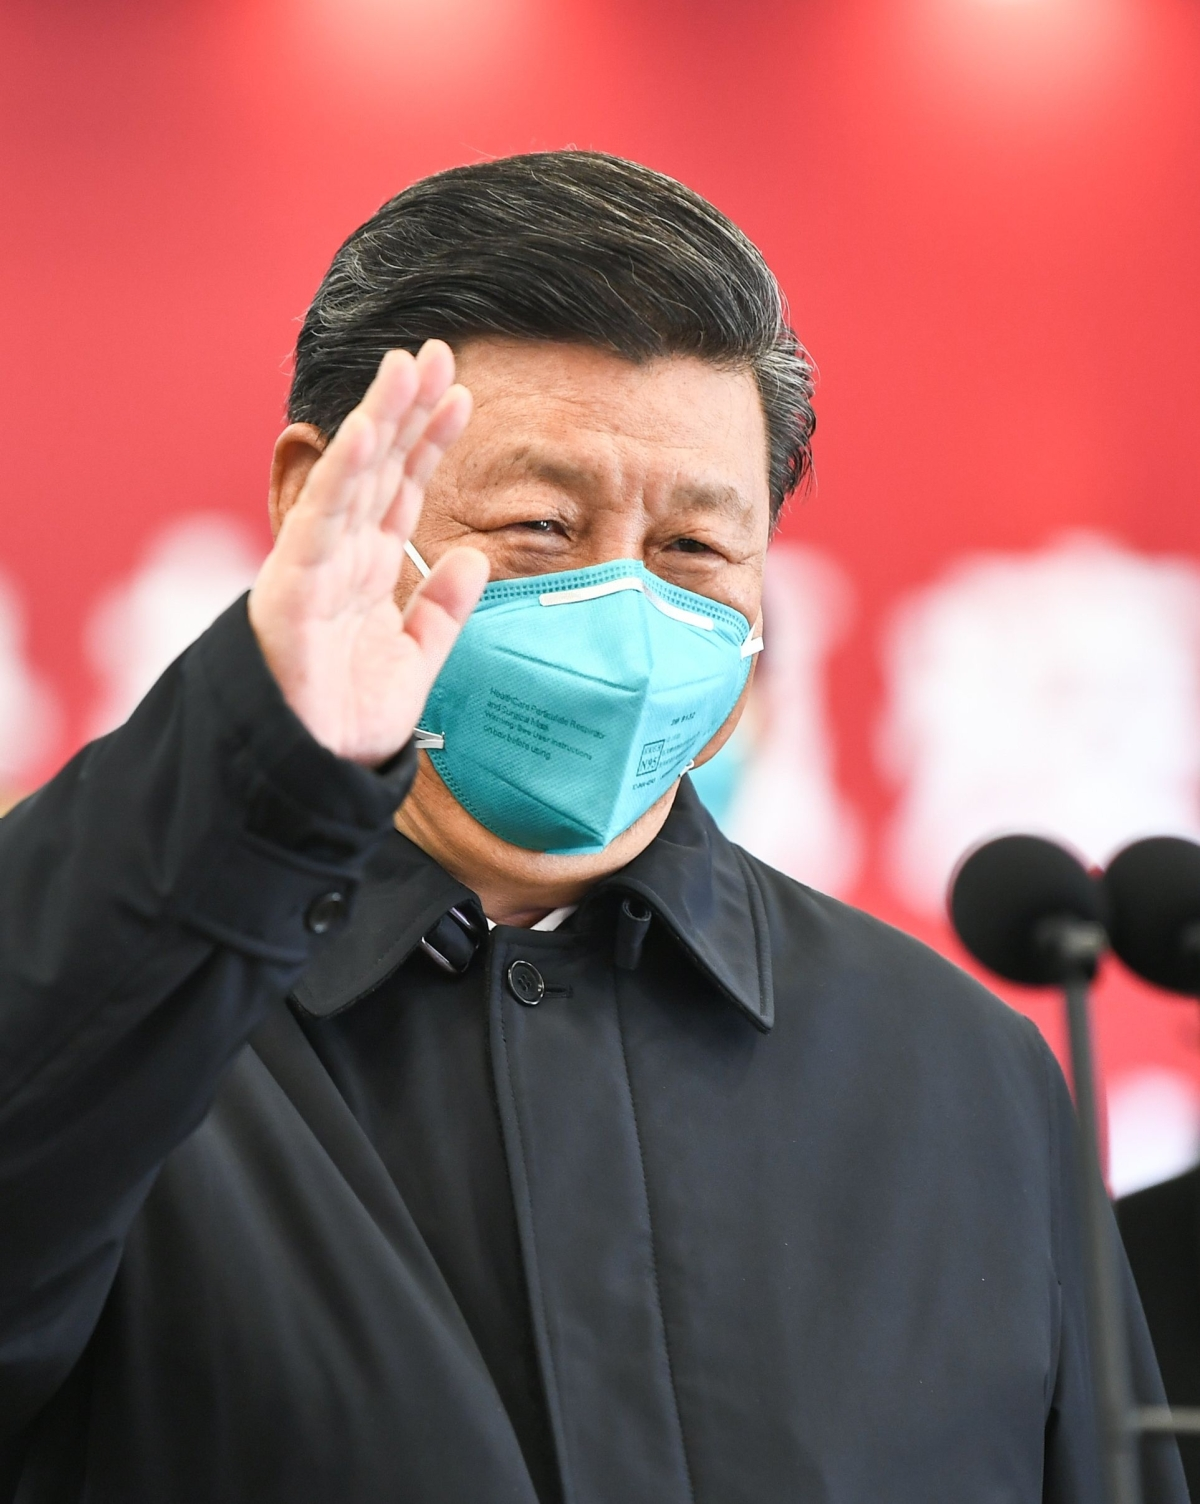 Xi Jinping waves to a coronavirus patient and medical staff via a video link at the Huoshenshan hospital in Wuhan on March 10, 2020